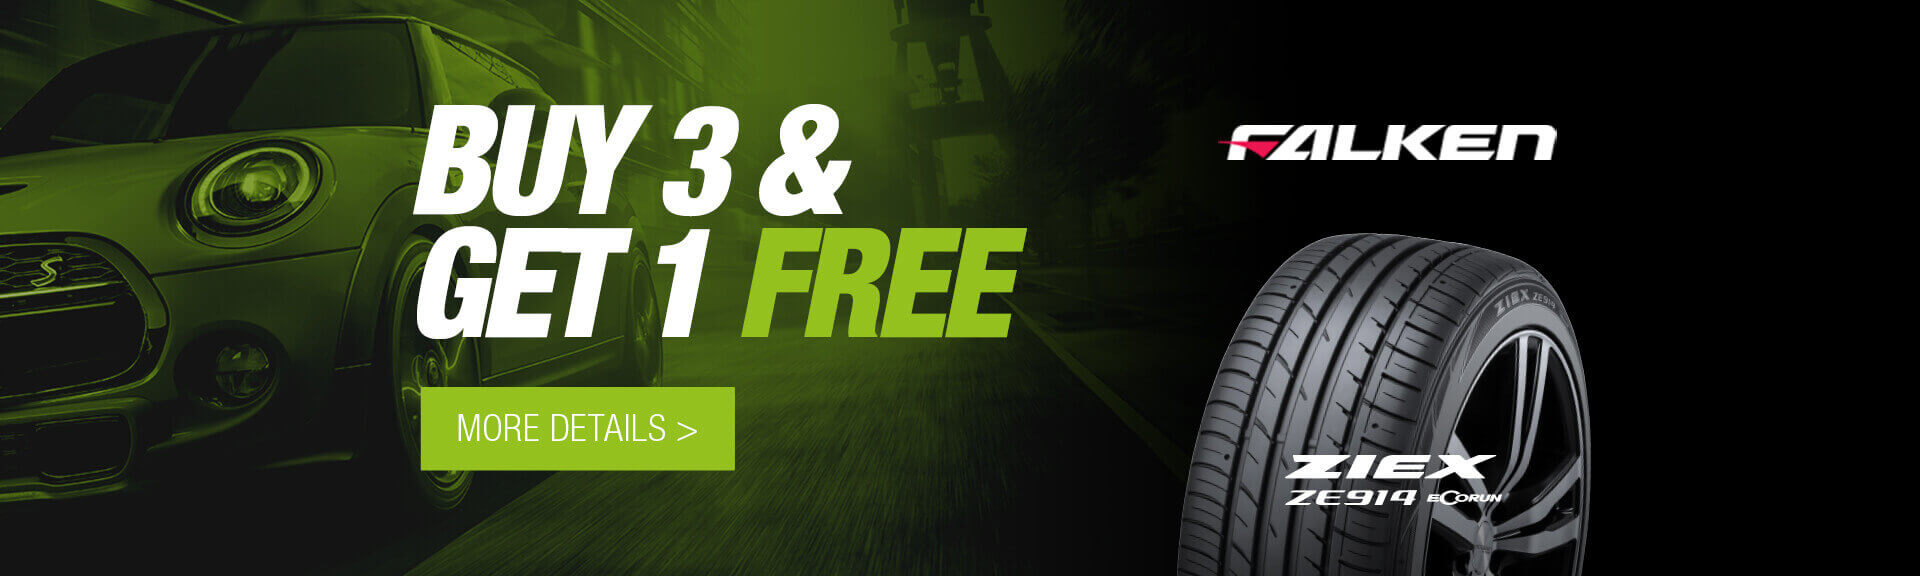 City Discount Falken Buy 3 Get 1 Free Tyres